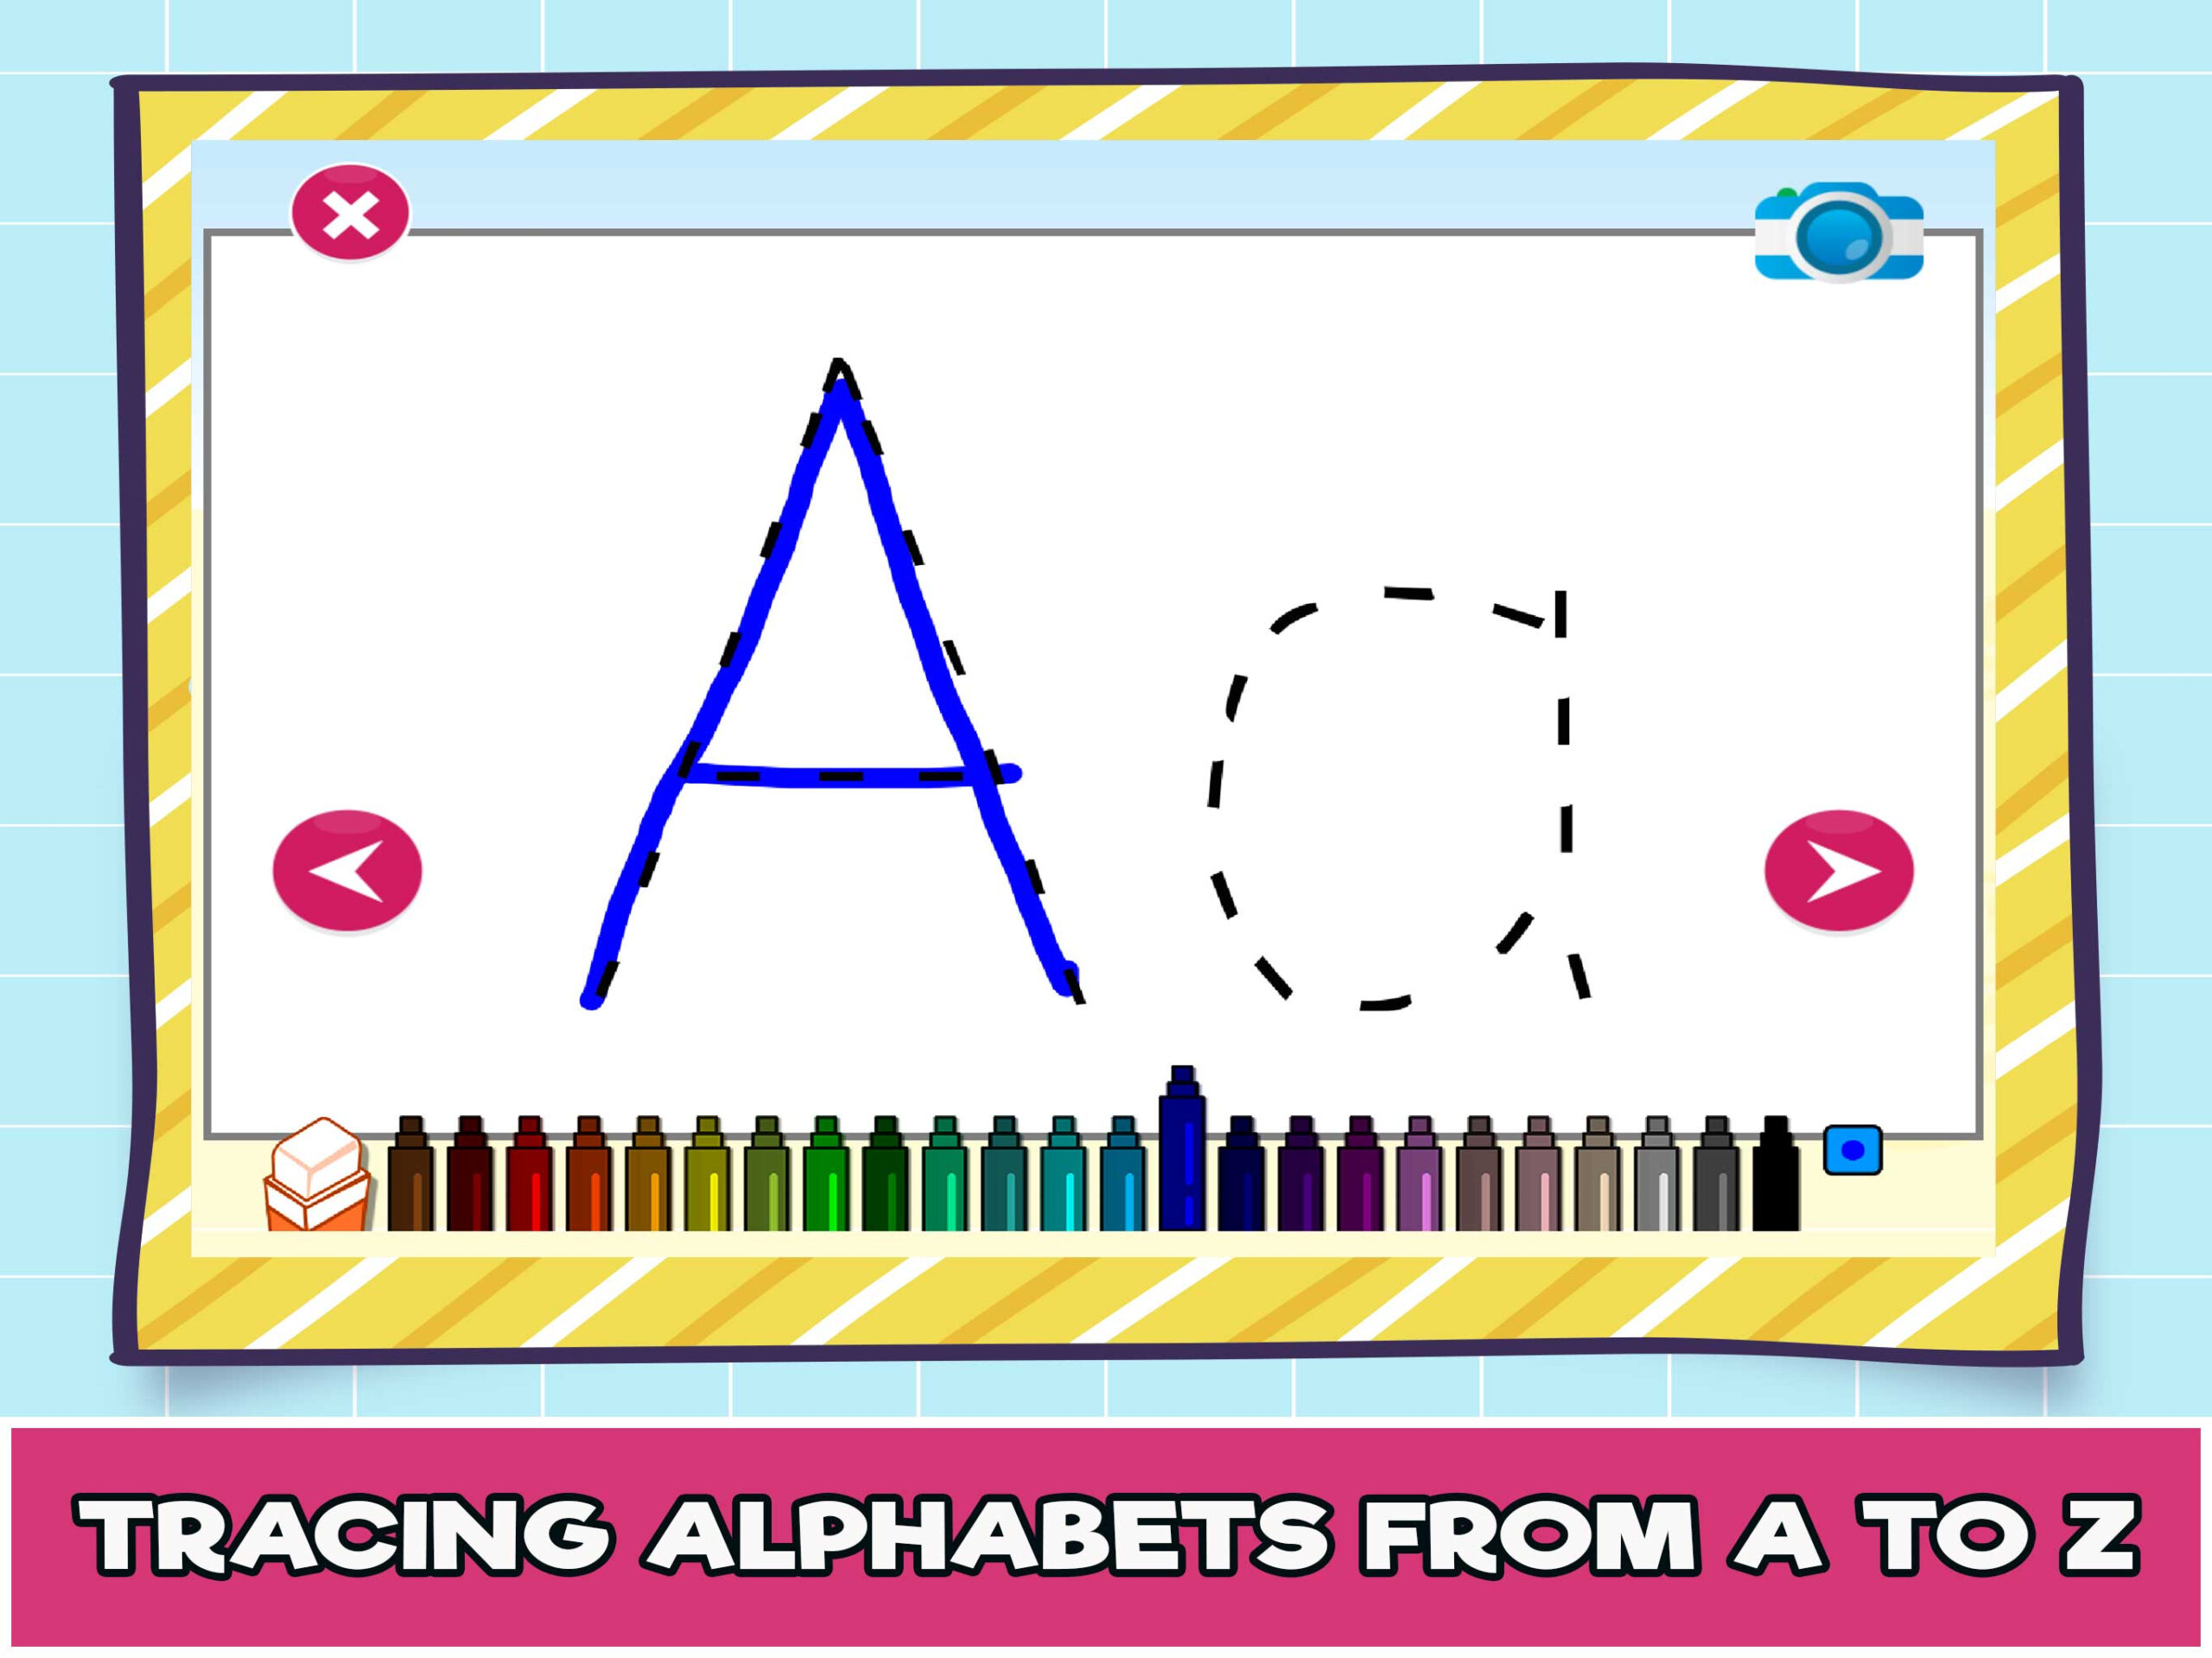 Free Online Alphabet Tracing Game For Kids - The Learning Apps inside Alphabet Tracing App Free